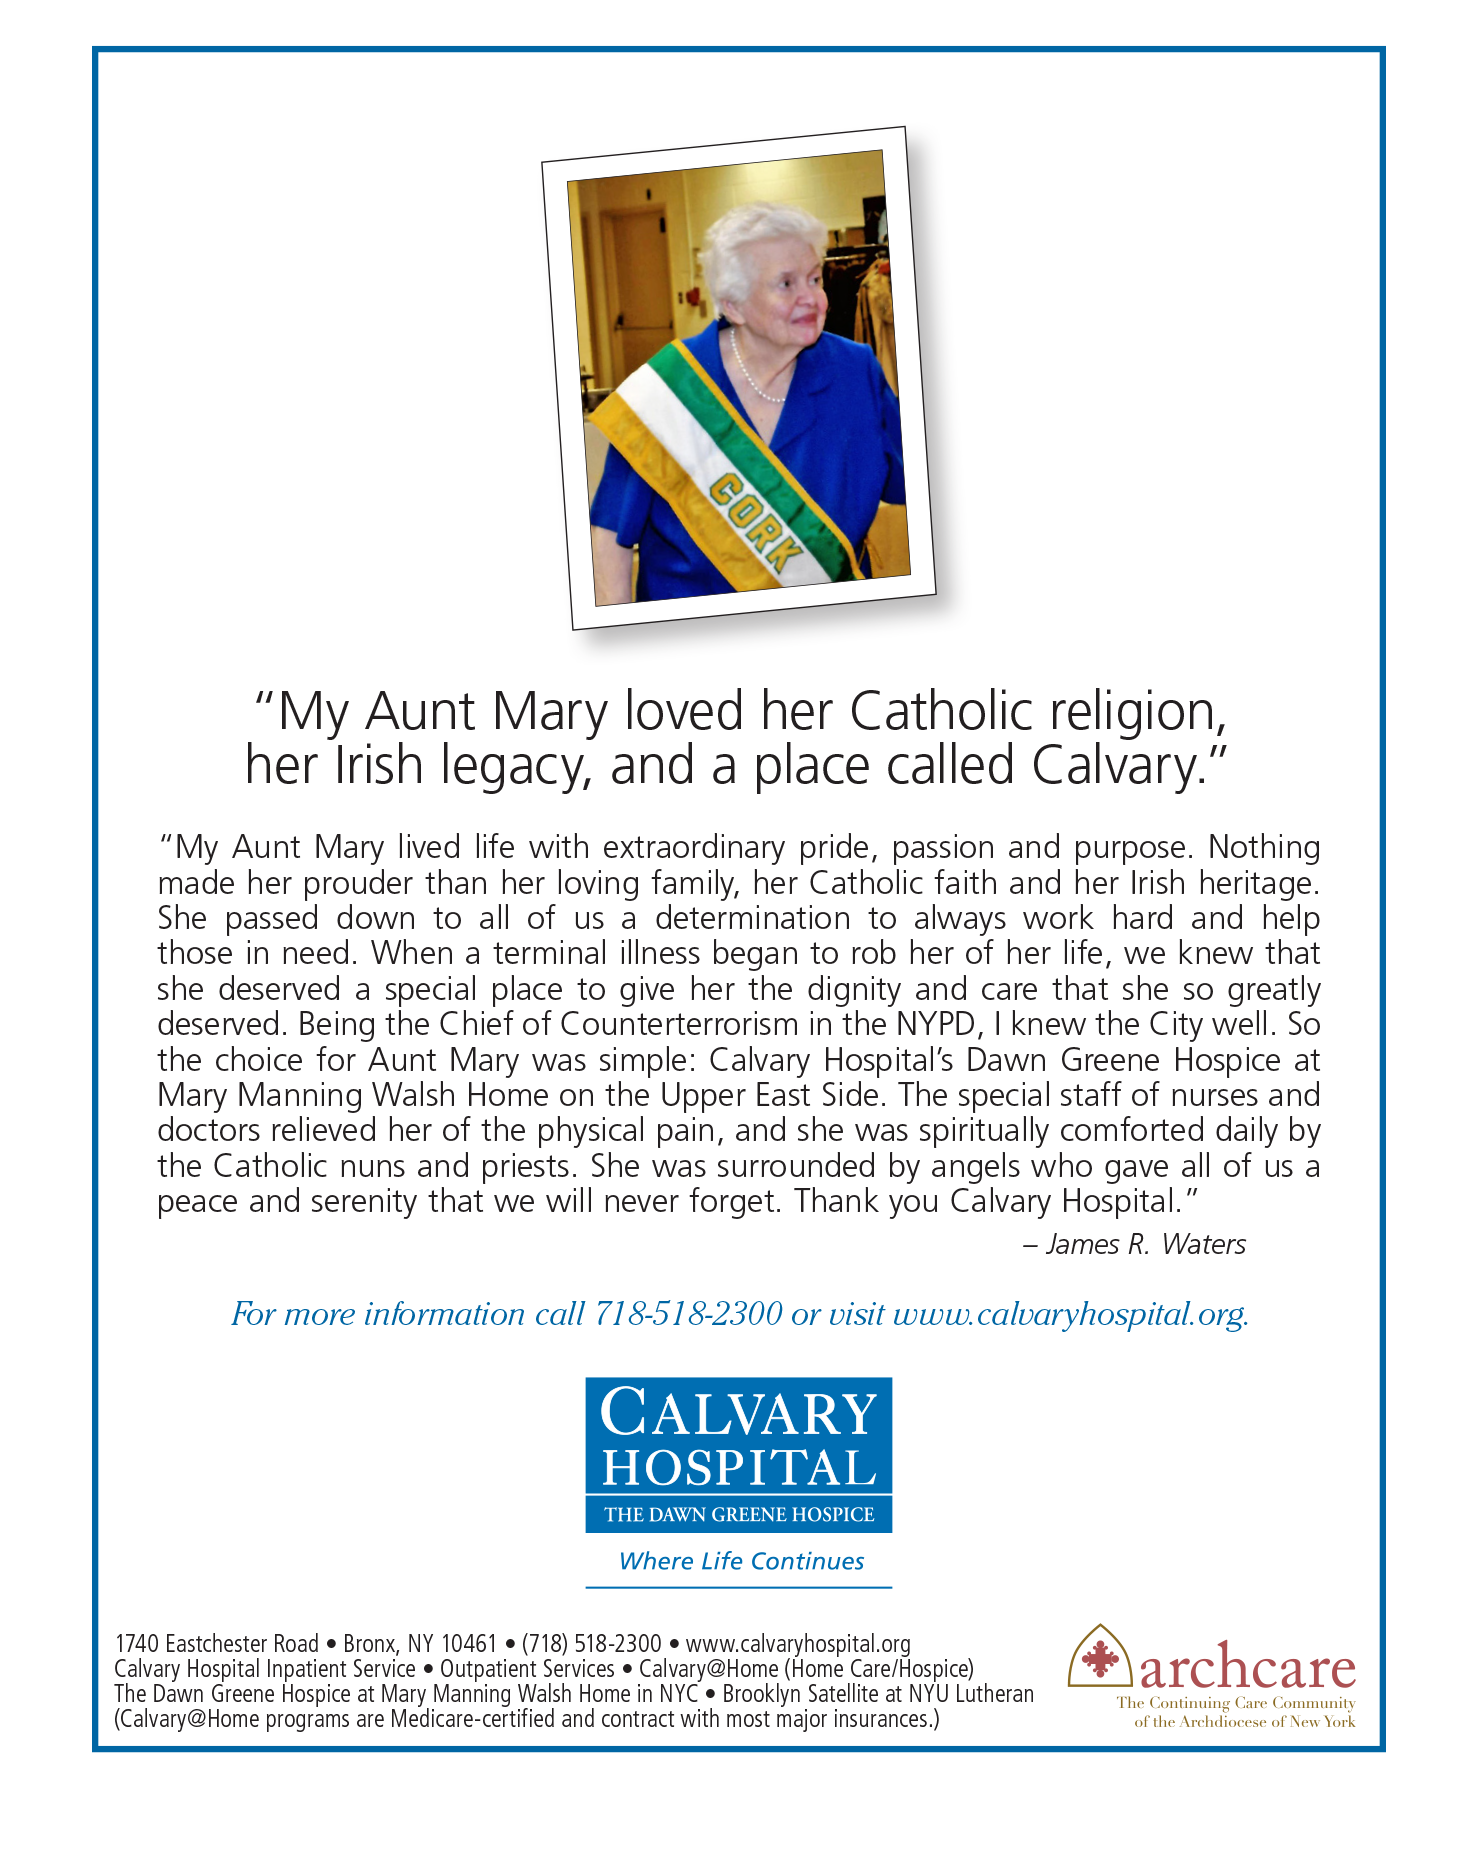 Calvary Hospital: Signature Care and Services in Brooklyn - The Tablet